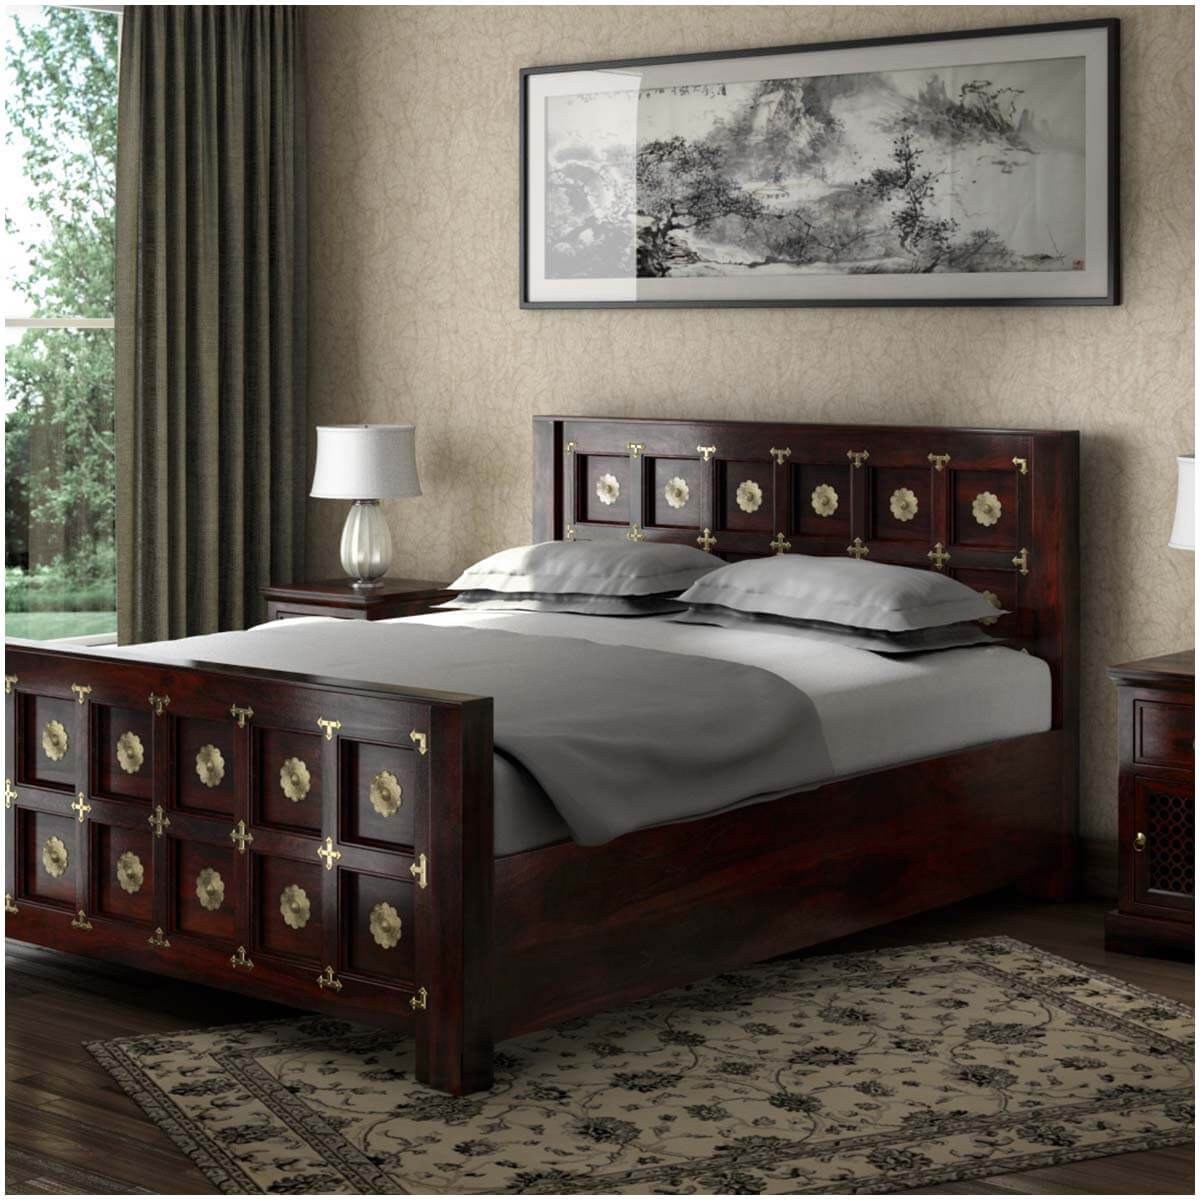 Madison Solid Wood Brass Accent Platform Bed w Foot & Headboard